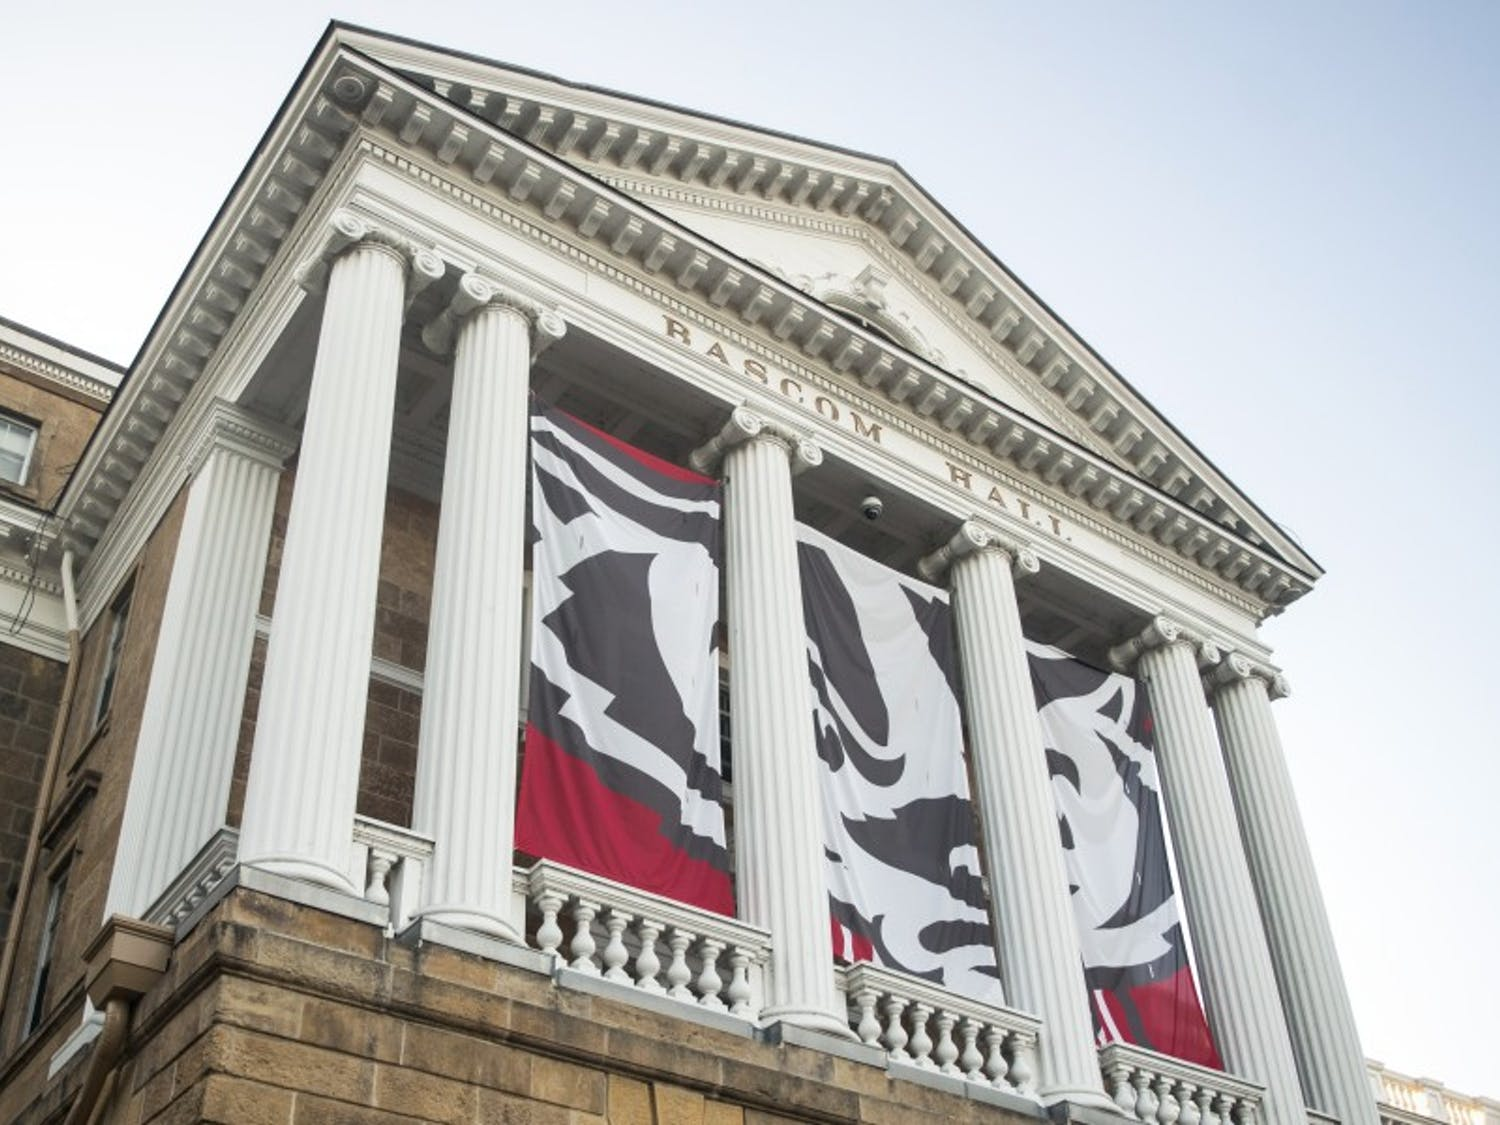 UW-Madison rejected the Callisto software that would give students a direct way to submit a detailed report of a sexual assault, leading to concern for the Student Title IX Advisory Committee.